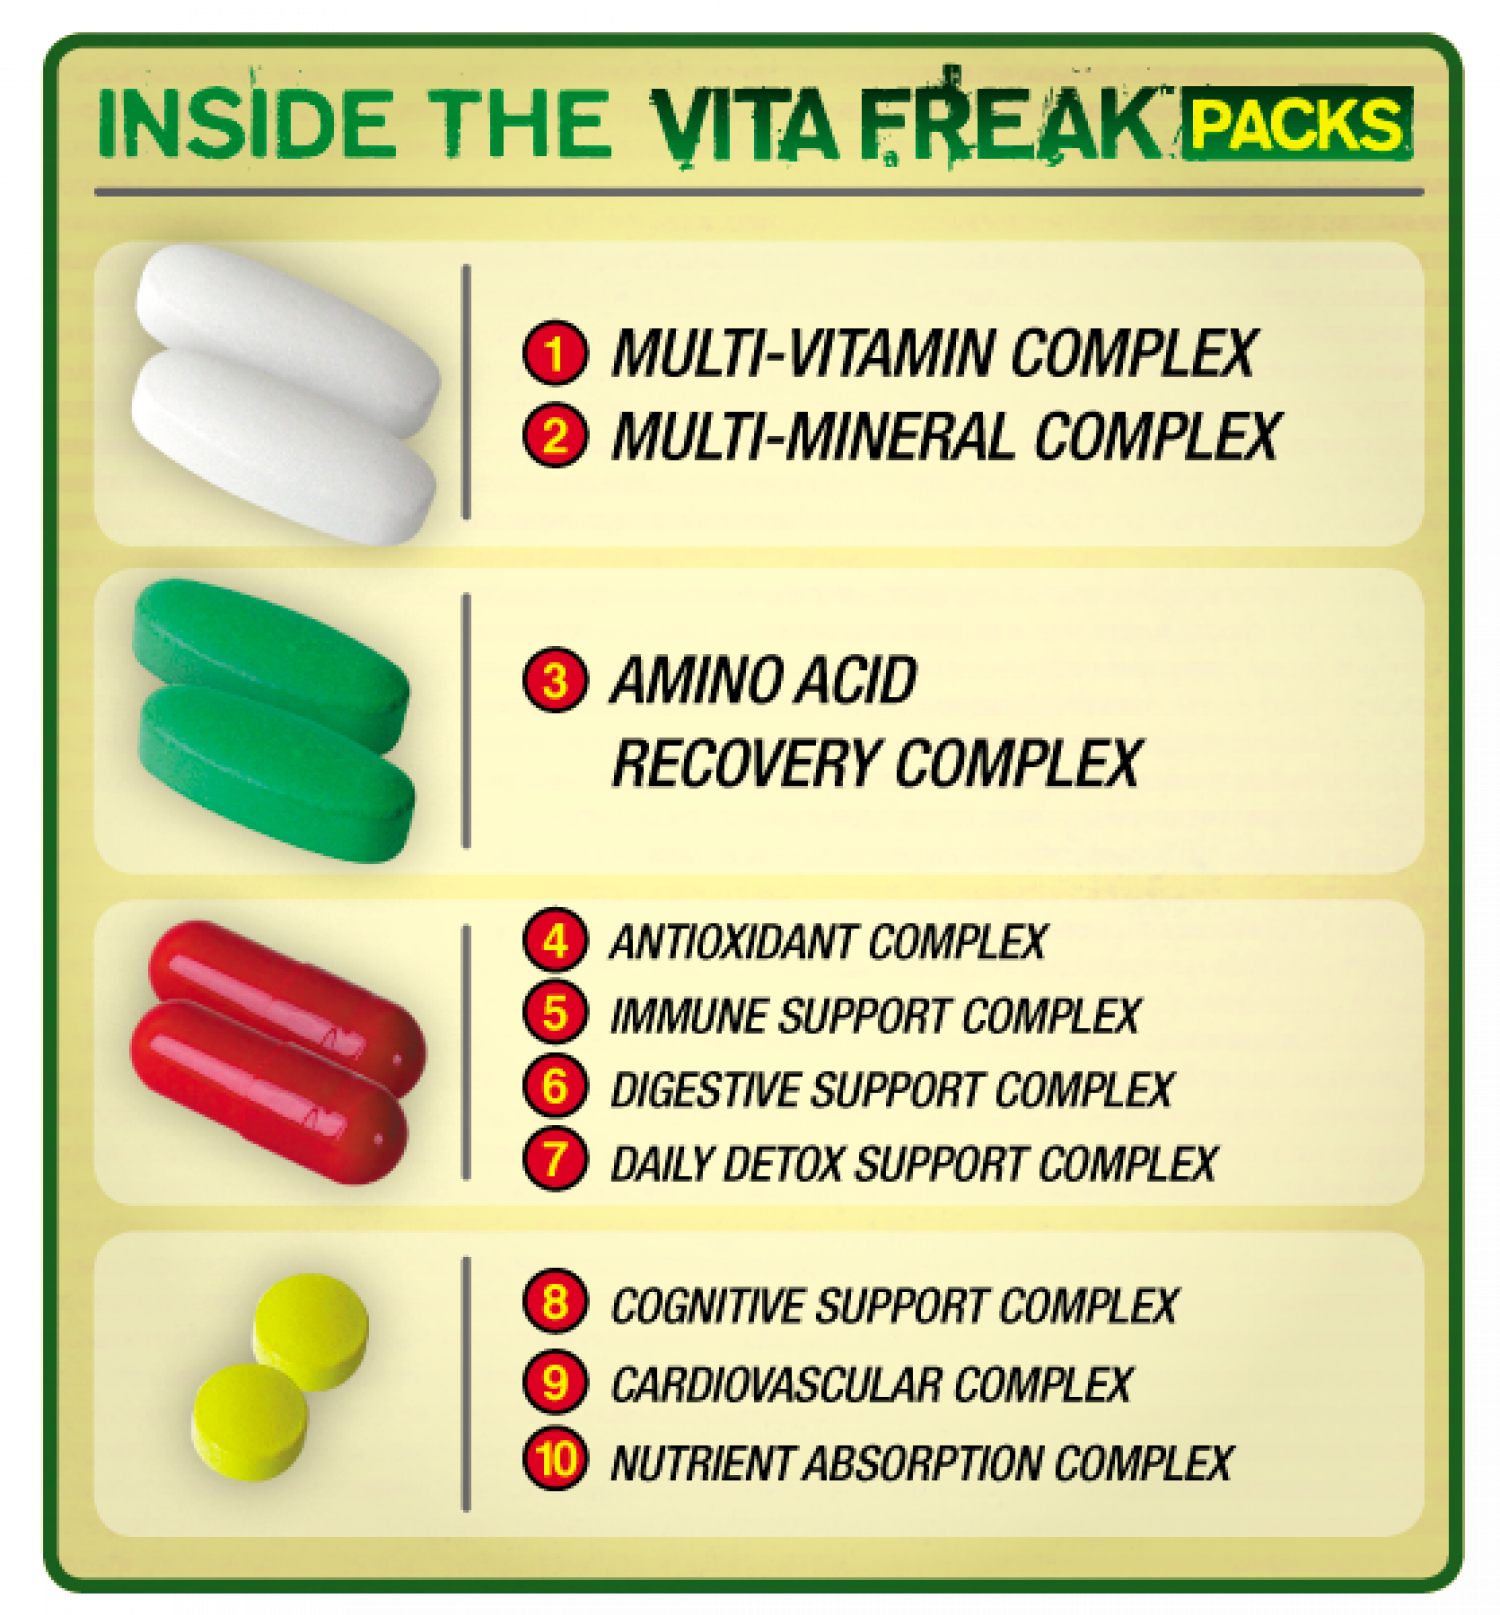 The Science Behind VITA FREAK PACKS Infographic